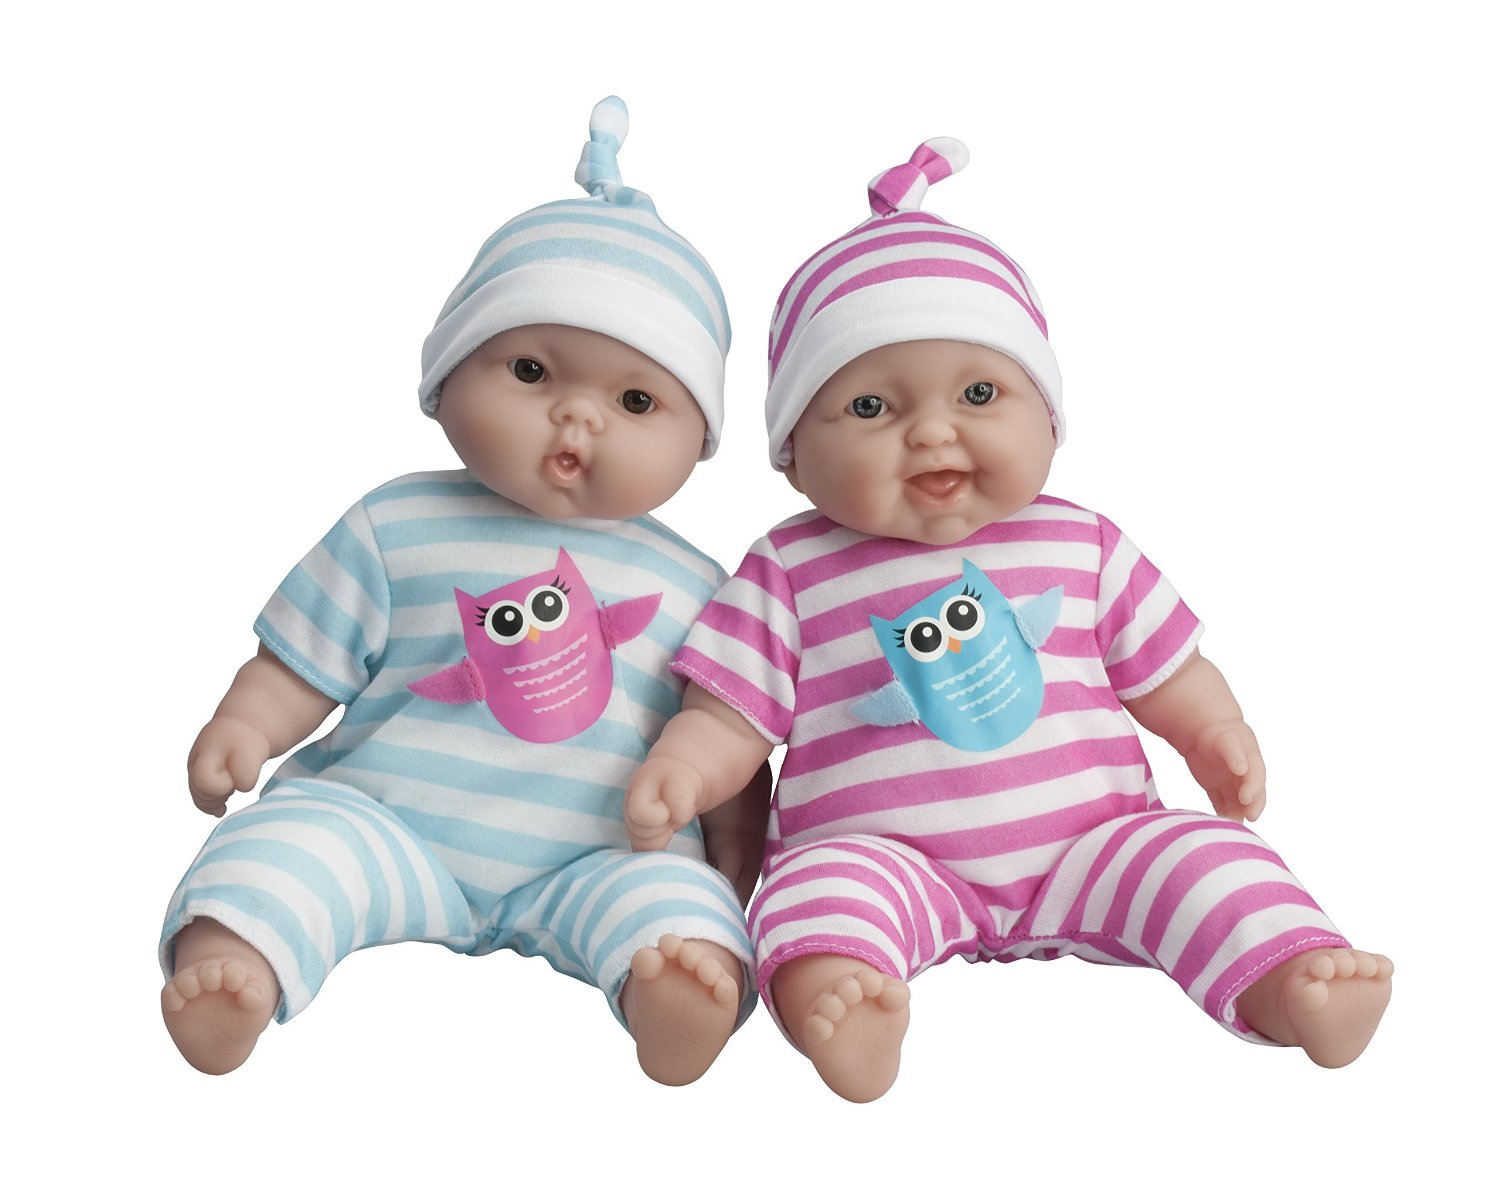 jc_toys_lots_to_cuddle_babies__13inch_baby_soft_doll_soft_body_twins__designed_by_berenguer